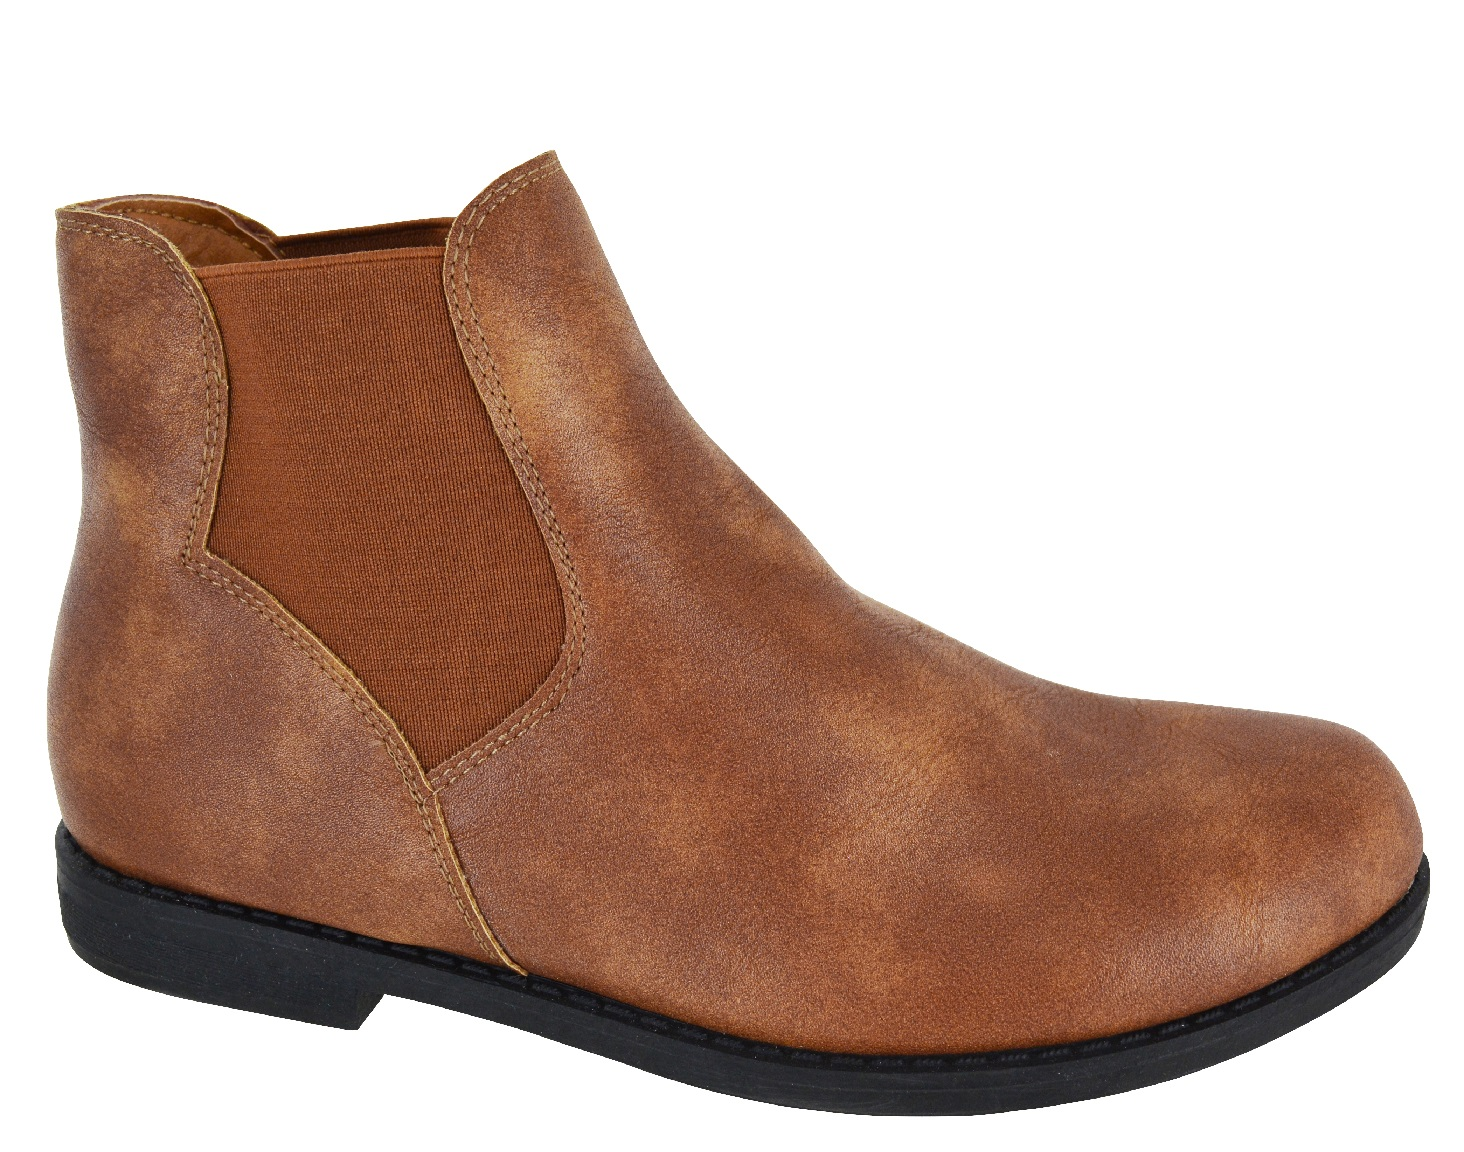 LADIES WOMENS FLAT LOW HEEL ANKLE CHELSEA DEALER PULL ON SHOES BOOTS UK SIZE 3-8